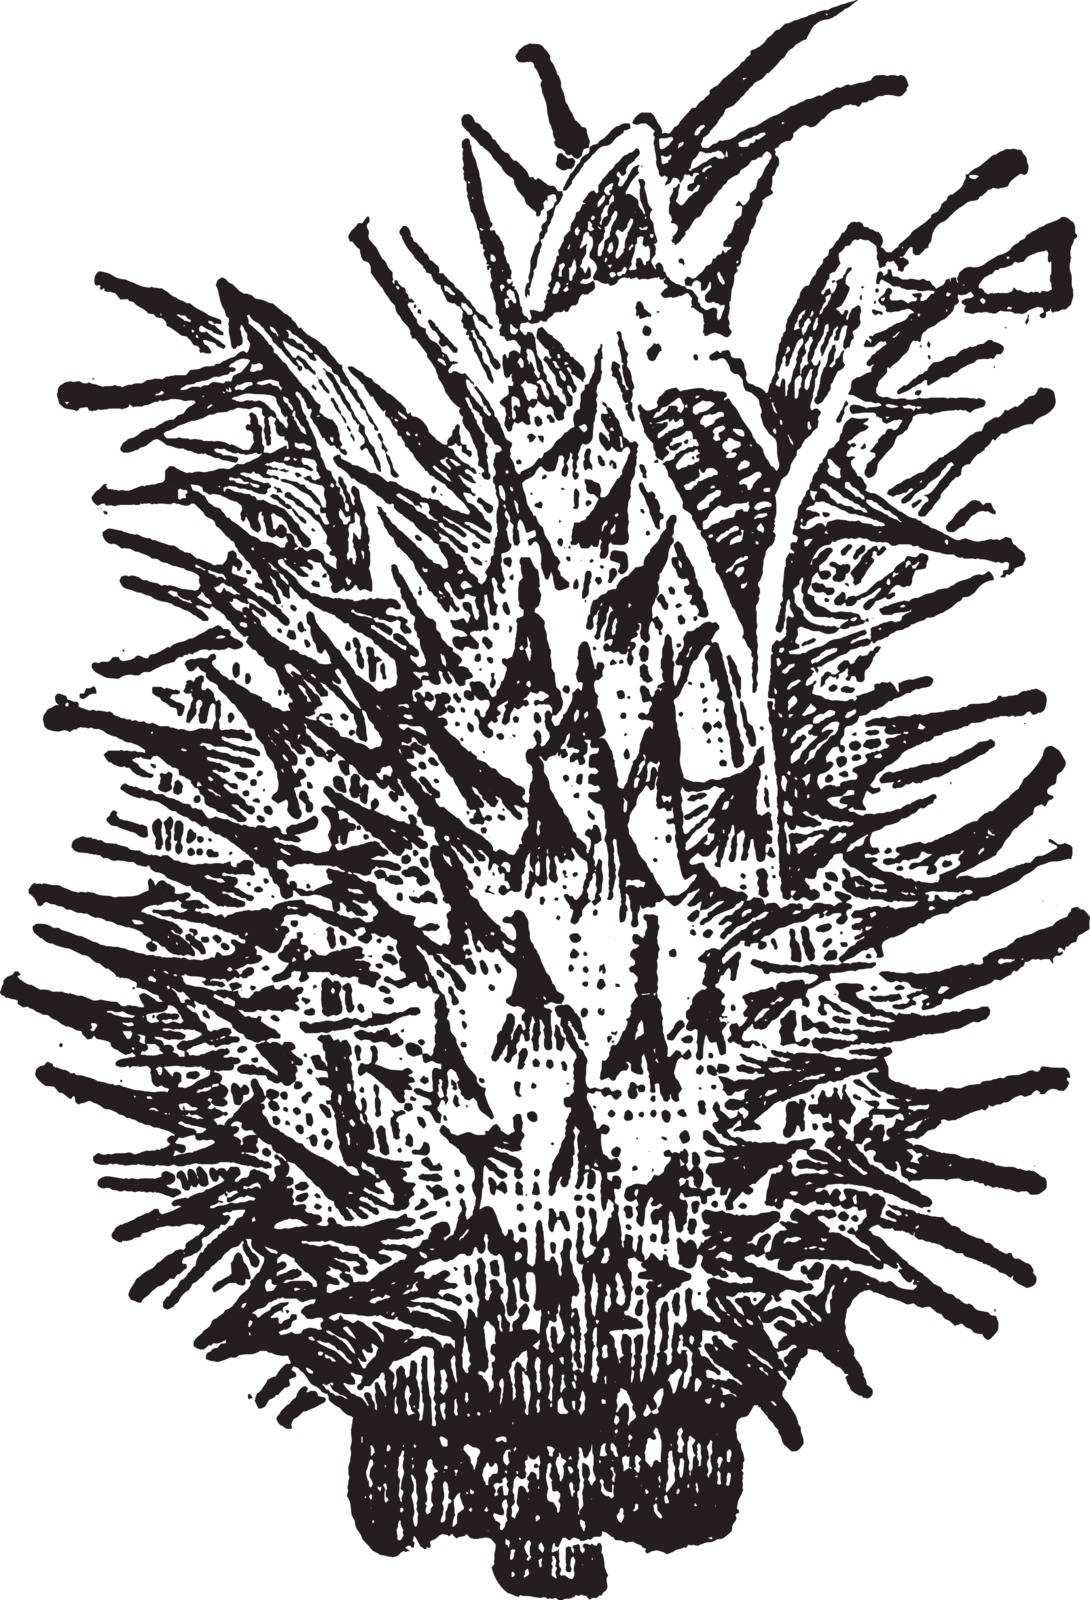 The Thorn Apple Bud is a spiny capsule long and broad. The seeds are numerous in 3 compartments within the casing, vintage line drawing or engraving illustration.